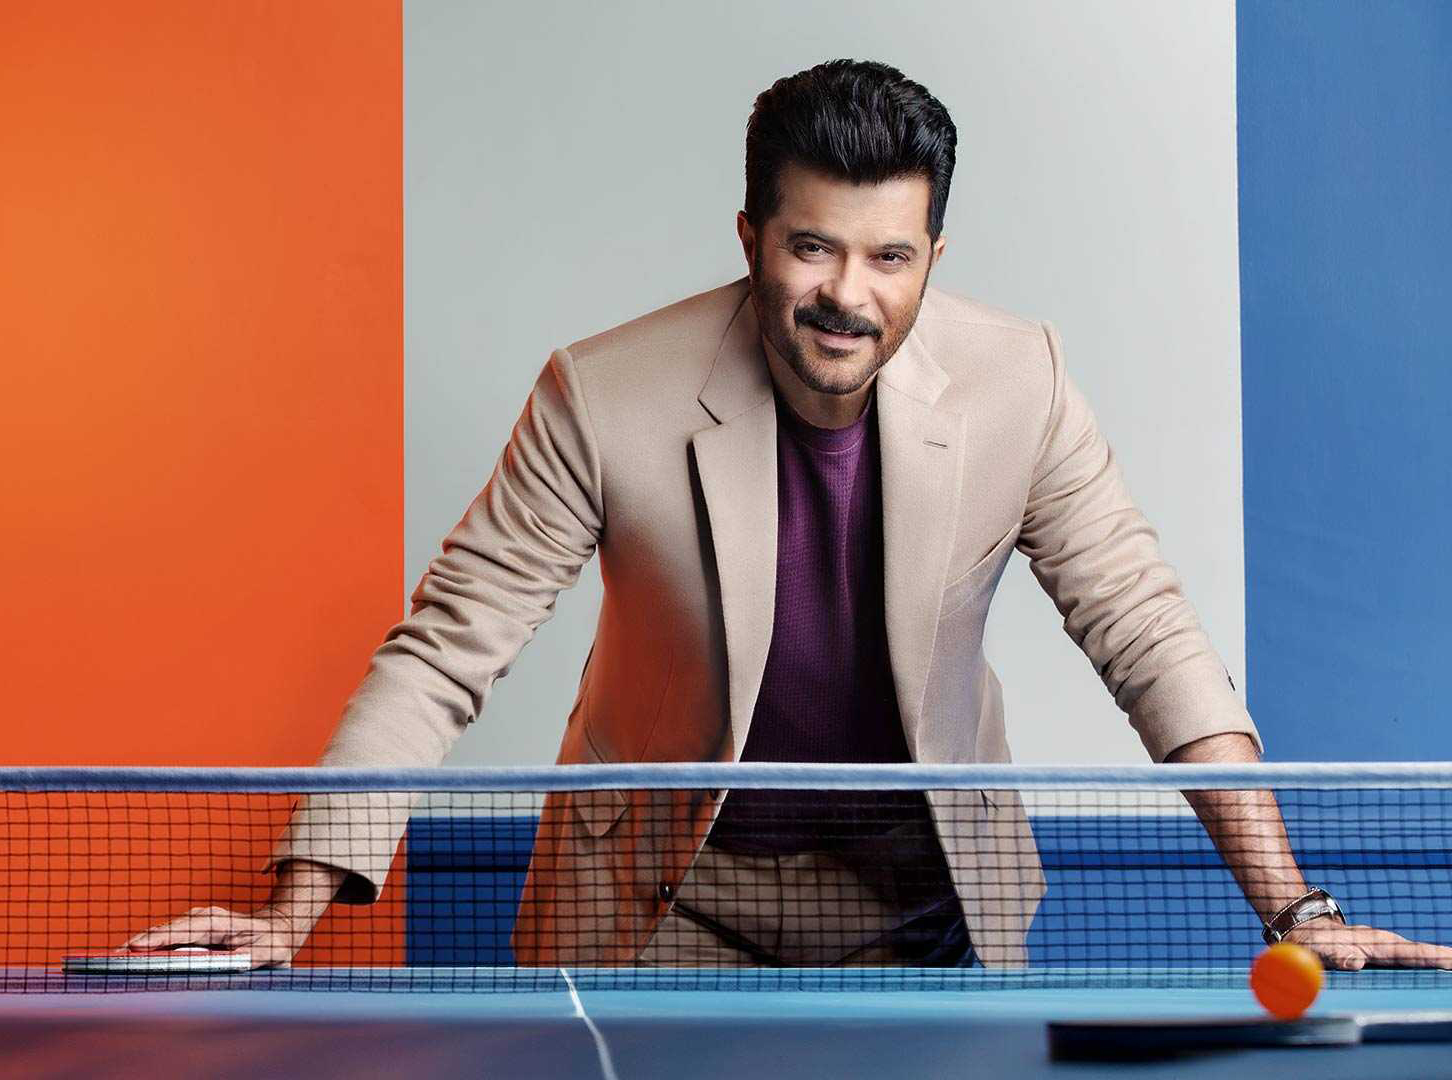 Aamir Khan Hd Wallpaper Anil Kapoor Latest Hd Wallpapers And Photos Tamilscraps Com